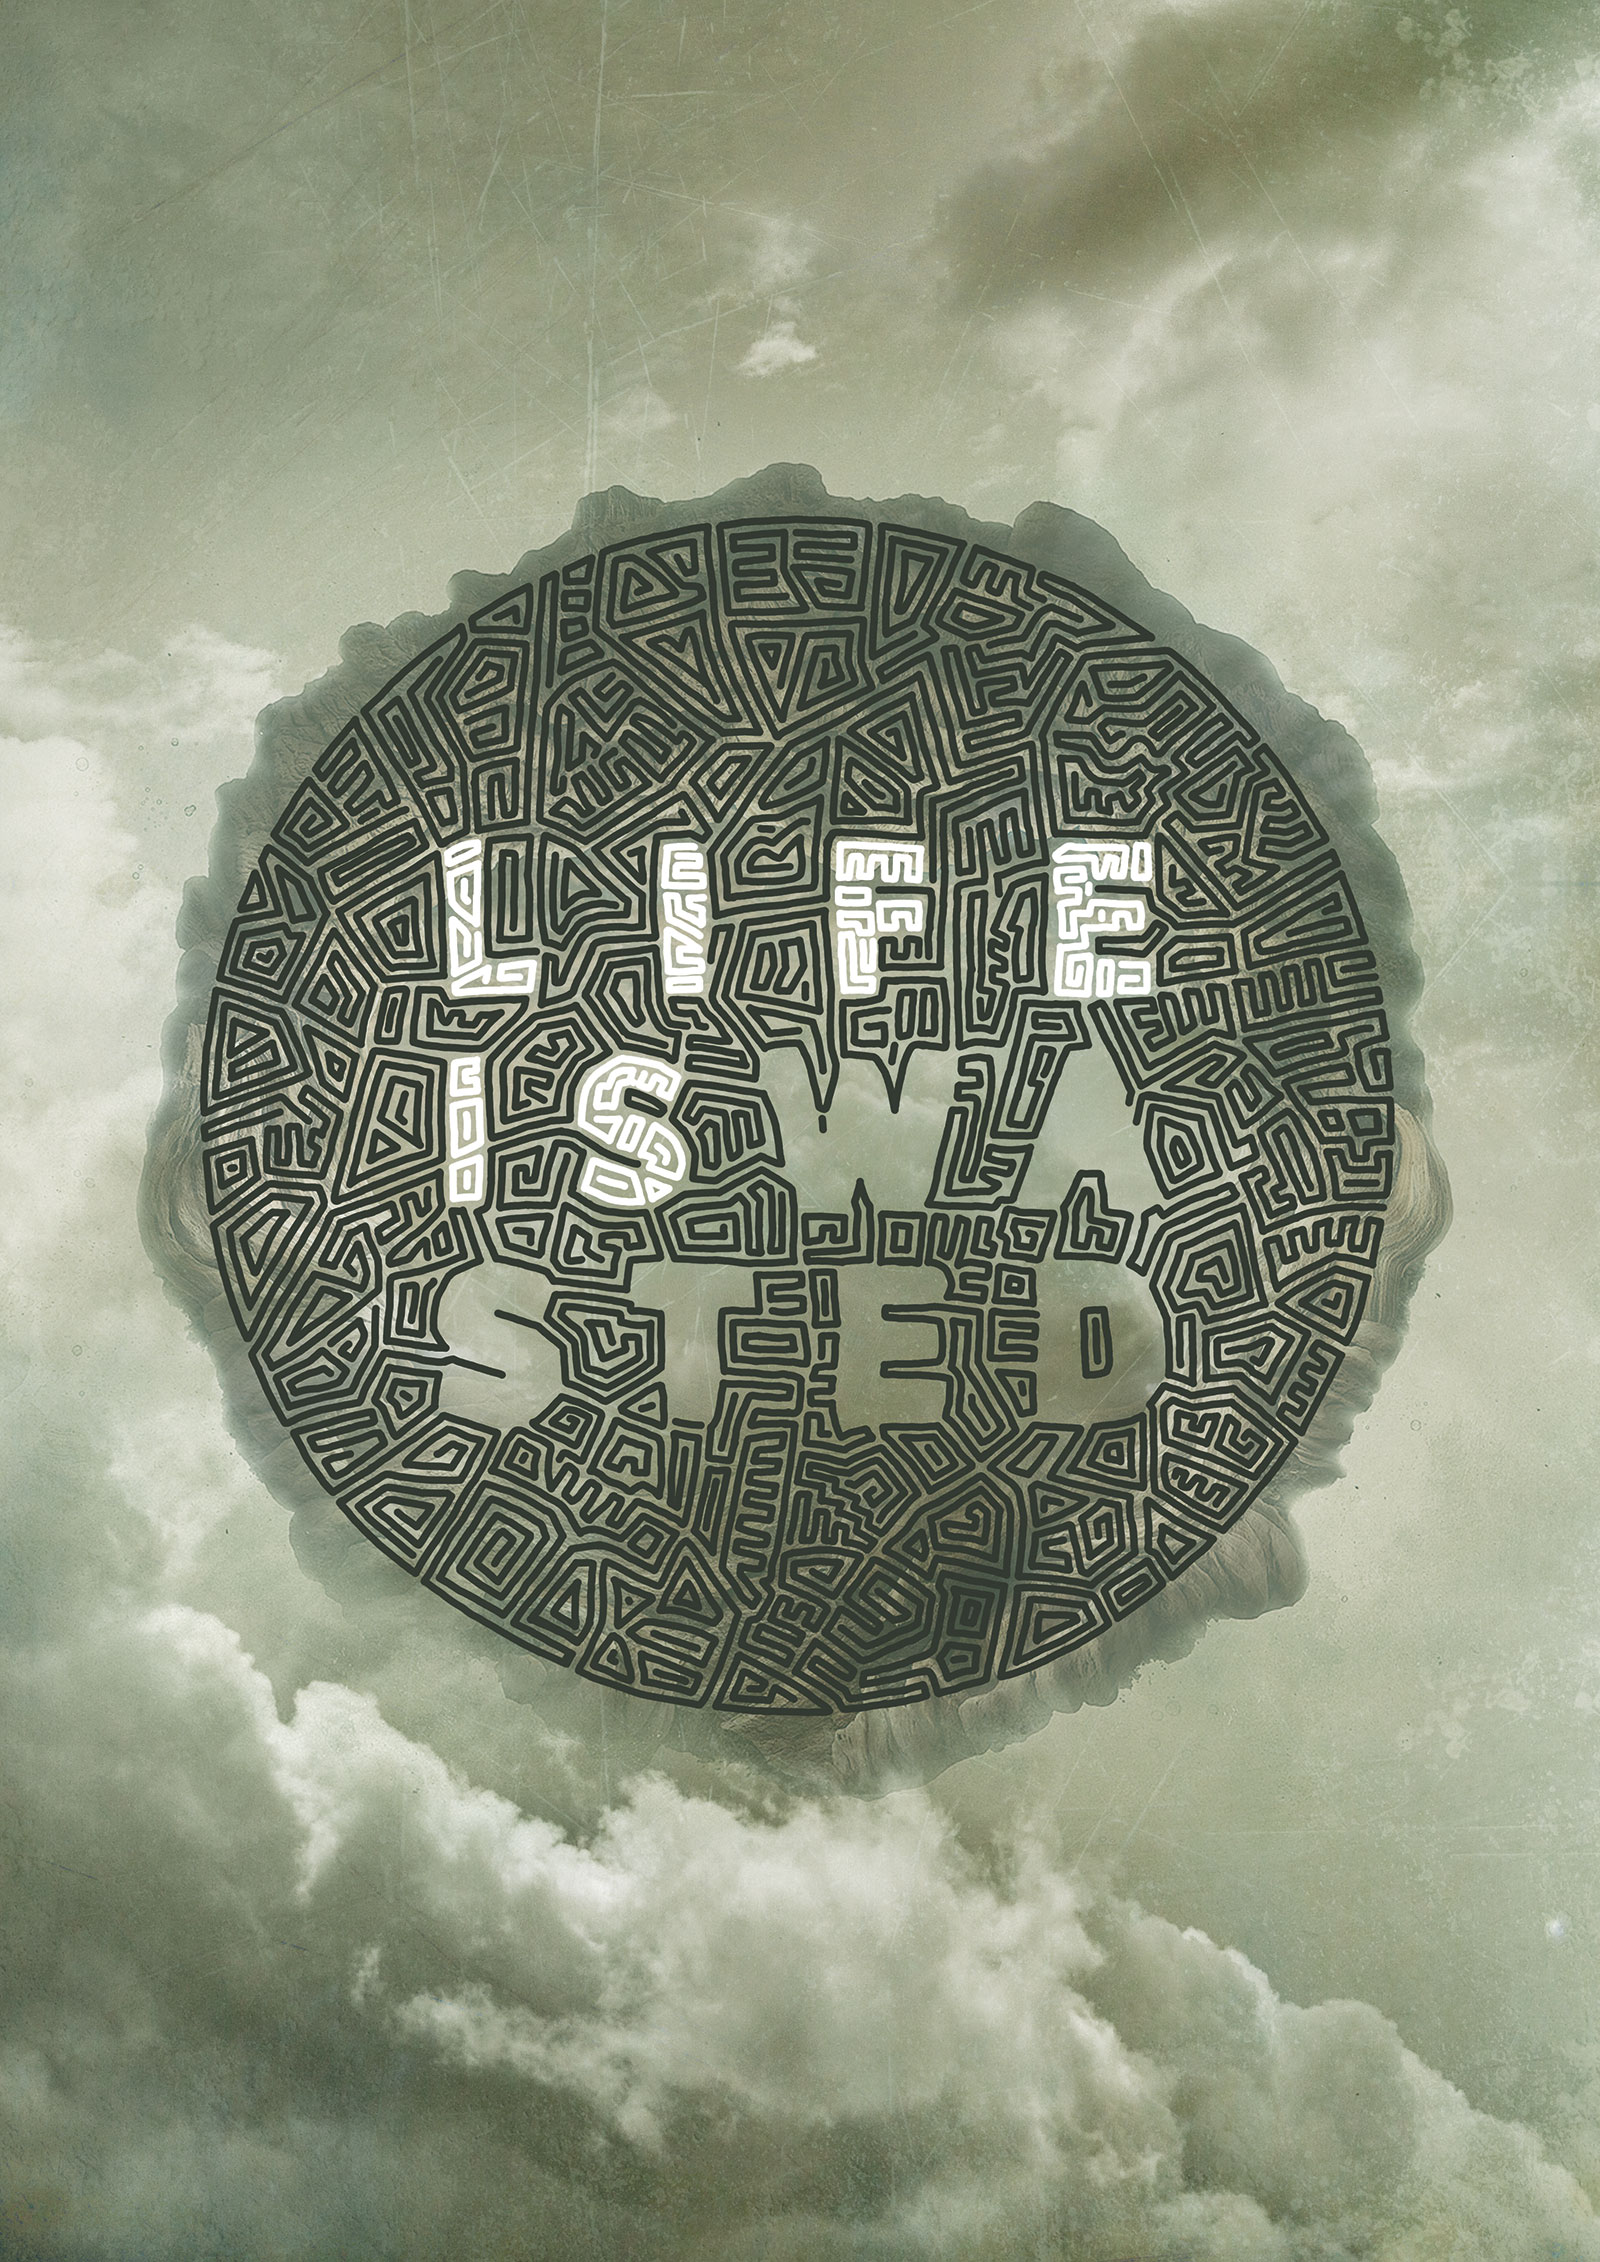 7lifeiswasted